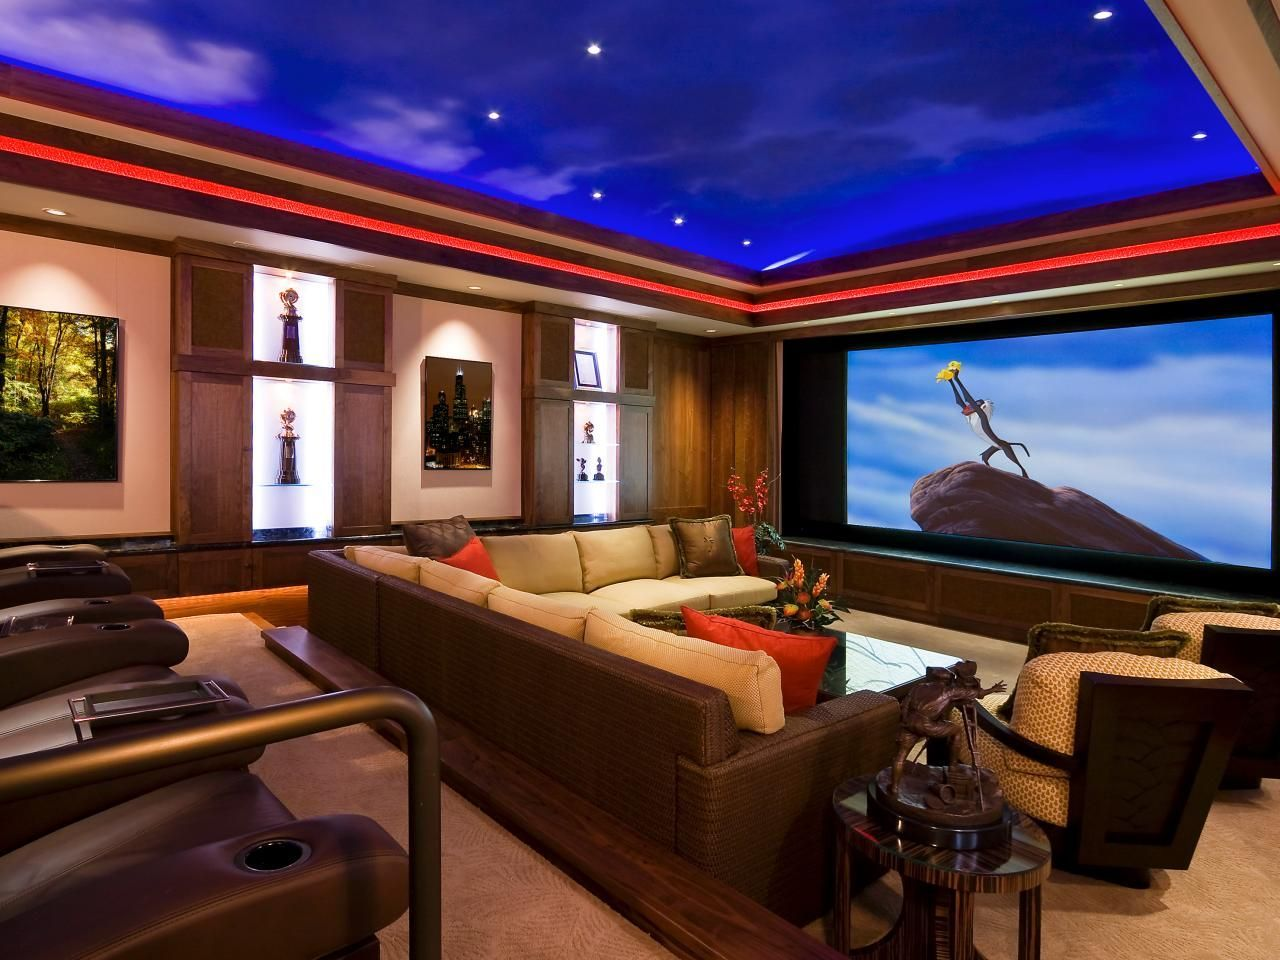 Choosing A Room For Home Theater Theatre Design Consideration Audio Wiring Guide Hgtvremodels Planning Describes The Essentials Of Space With